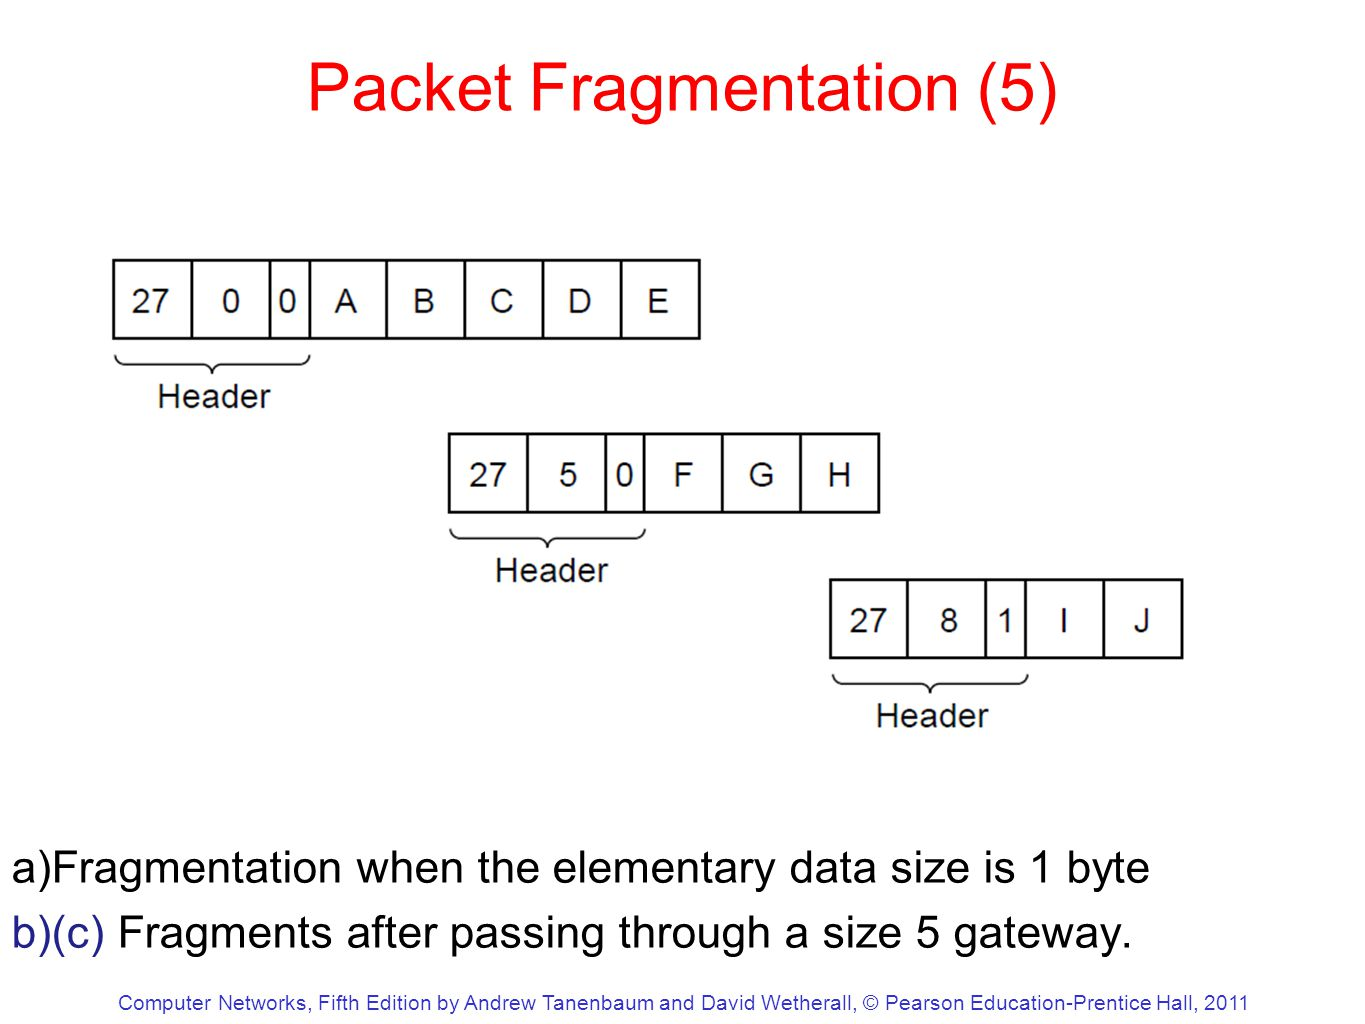 Computer Networks, Fifth Edition by Andrew Tanenbaum and David Wetherall, © Pearson Education-Prentice Hall, 2011 Packet Fragmentation (5) a)Fragmentation when the elementary data size is 1 byte b)(c) Fragments after passing through a size 5 gateway.